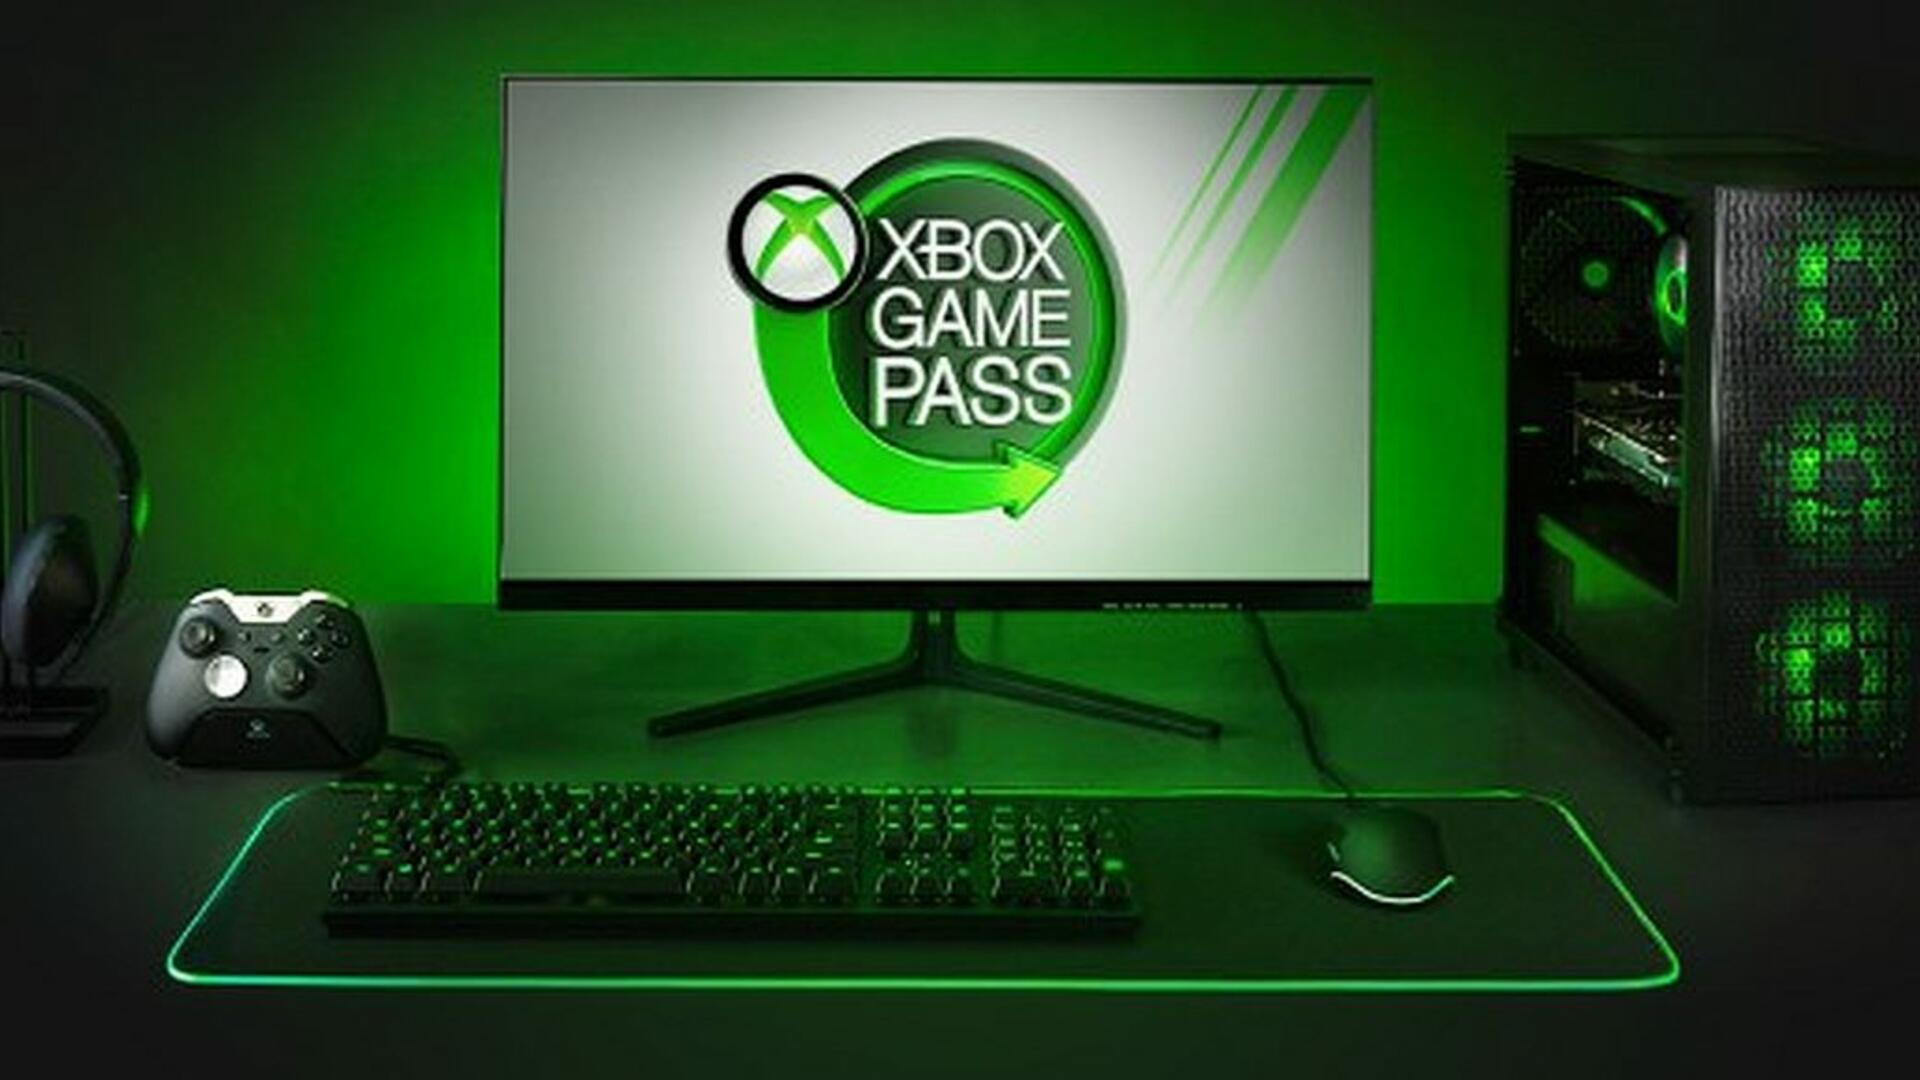 Microsoft Claims Xbox Game Pass Subscribers Play More Games and More Genres